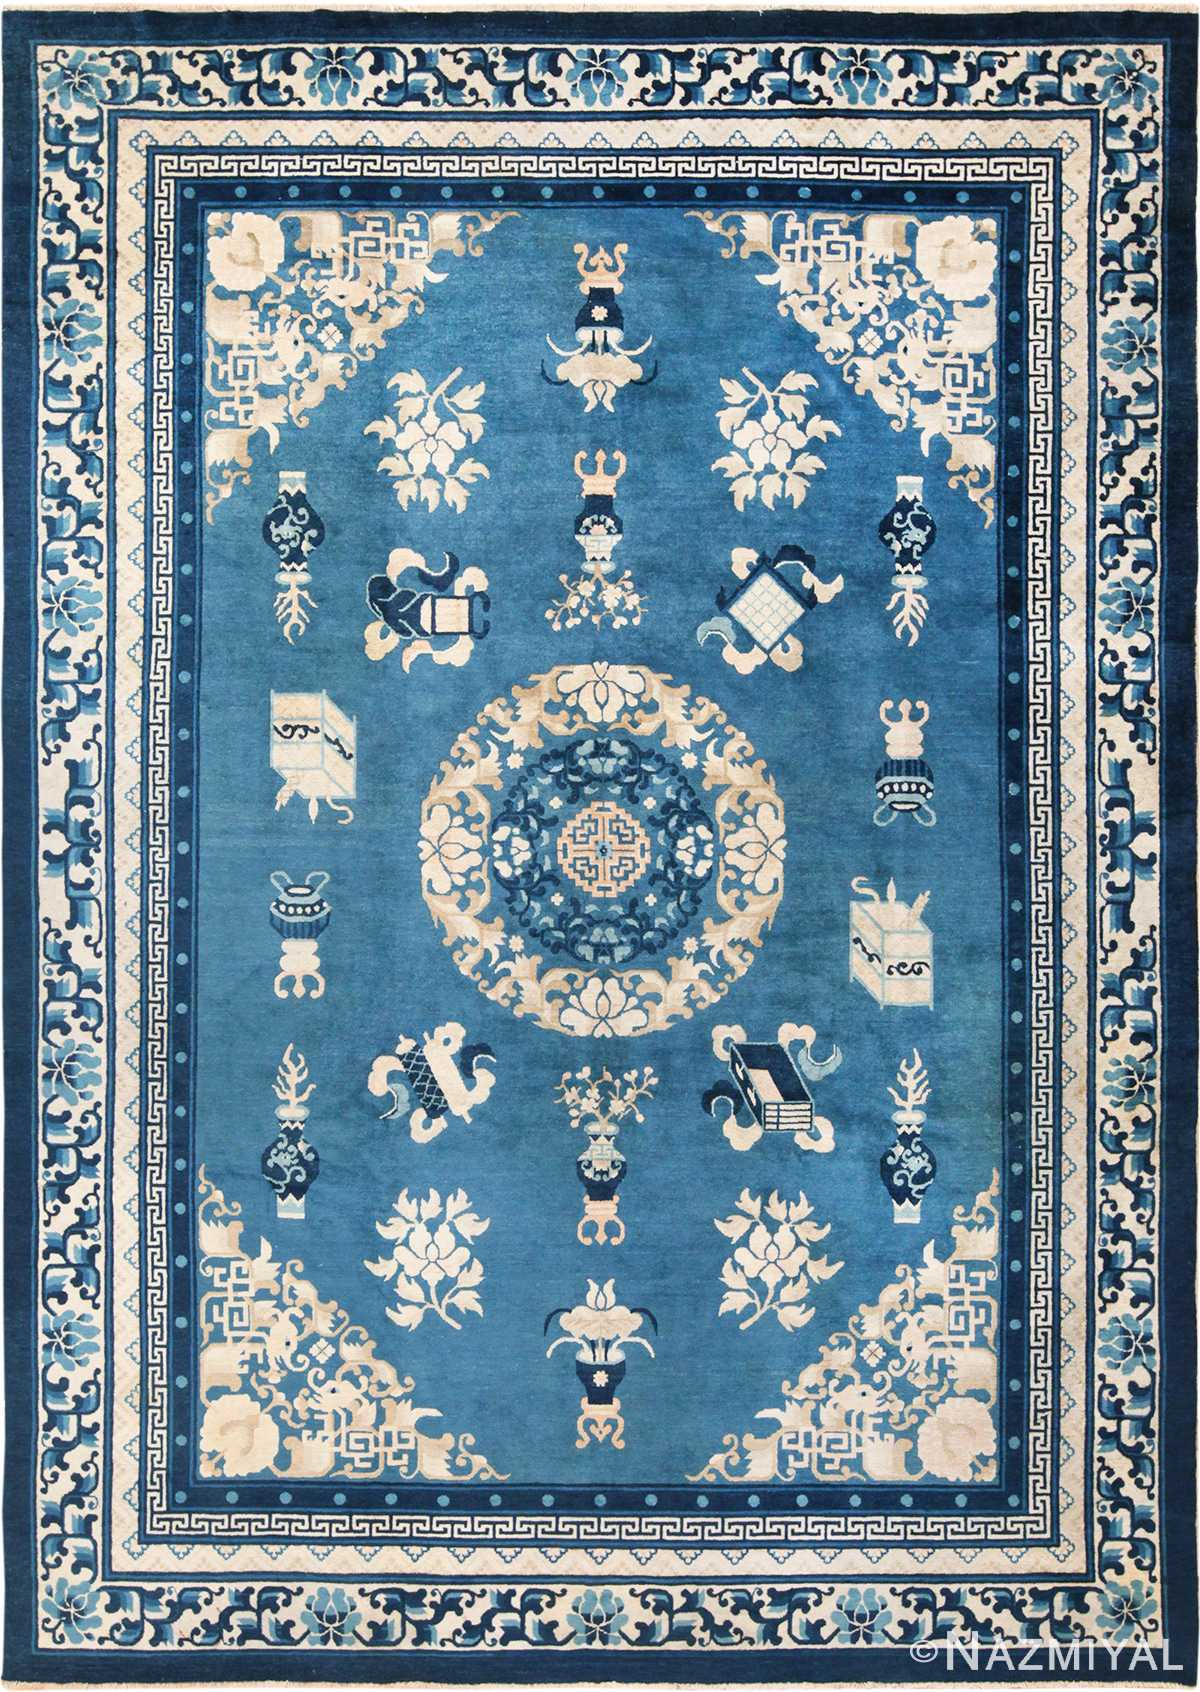 Antique Room Size Blue and Ivory Chinese Rug 49902 from Nazmiyal Antique Rugs